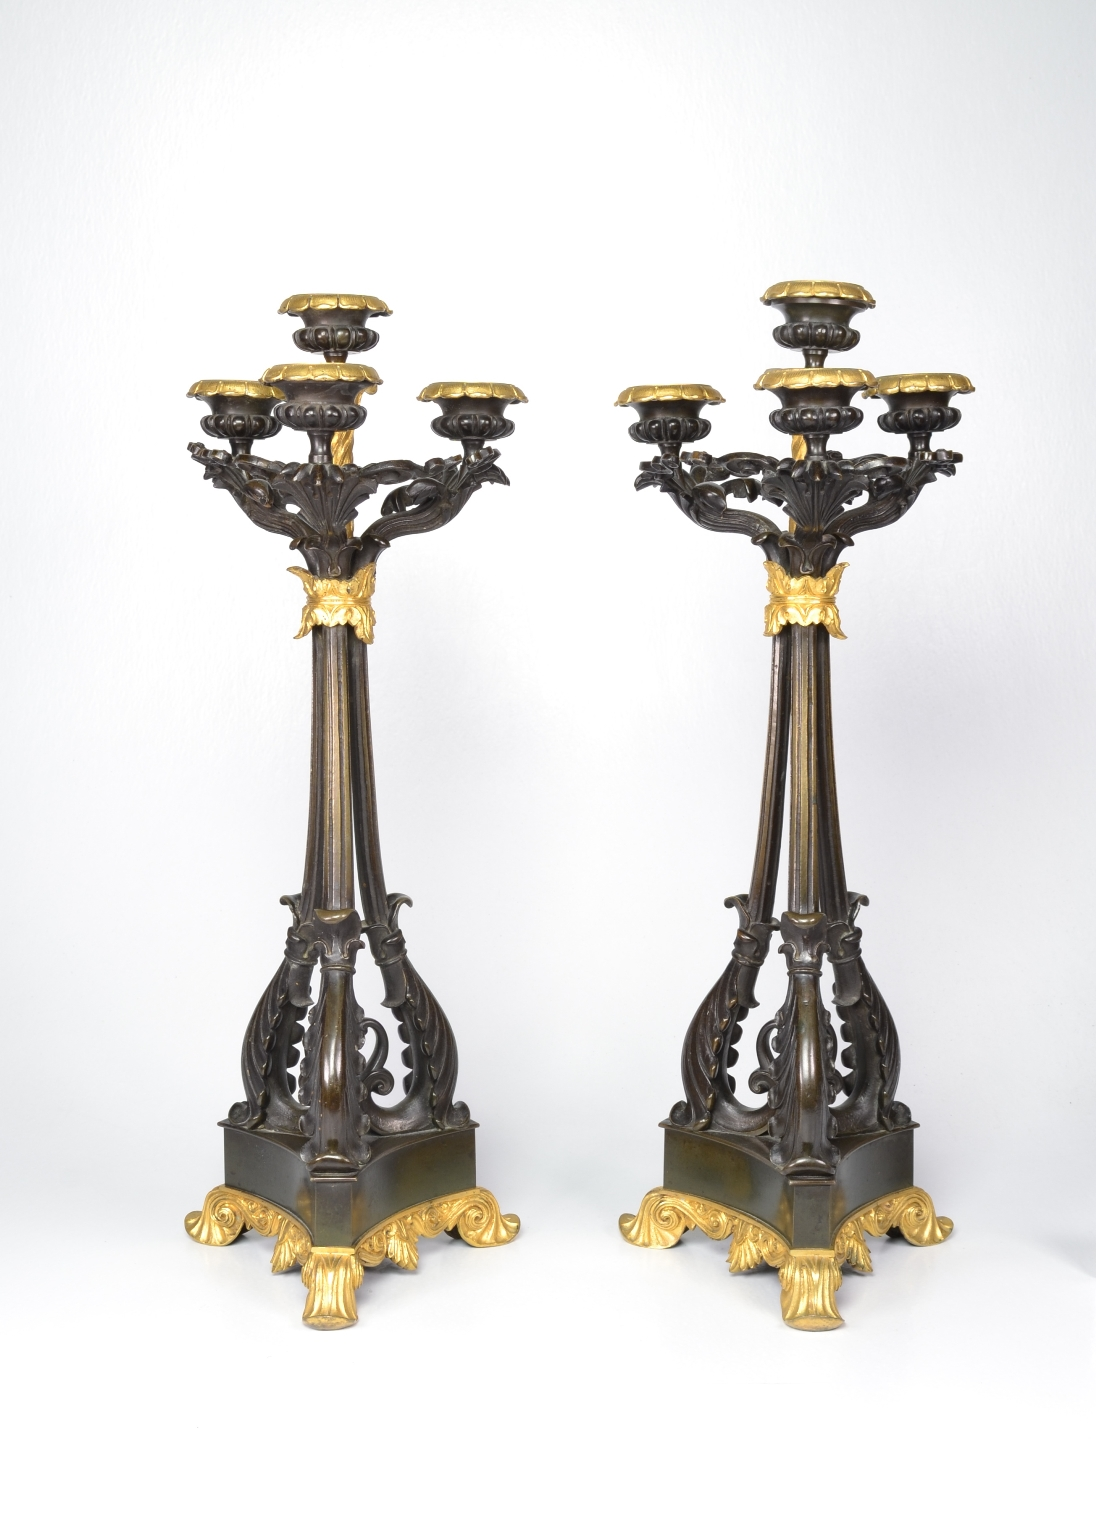 View 2: Pair of Louis-Philippe Bronze and Ormolu Candelabra, c. 1840